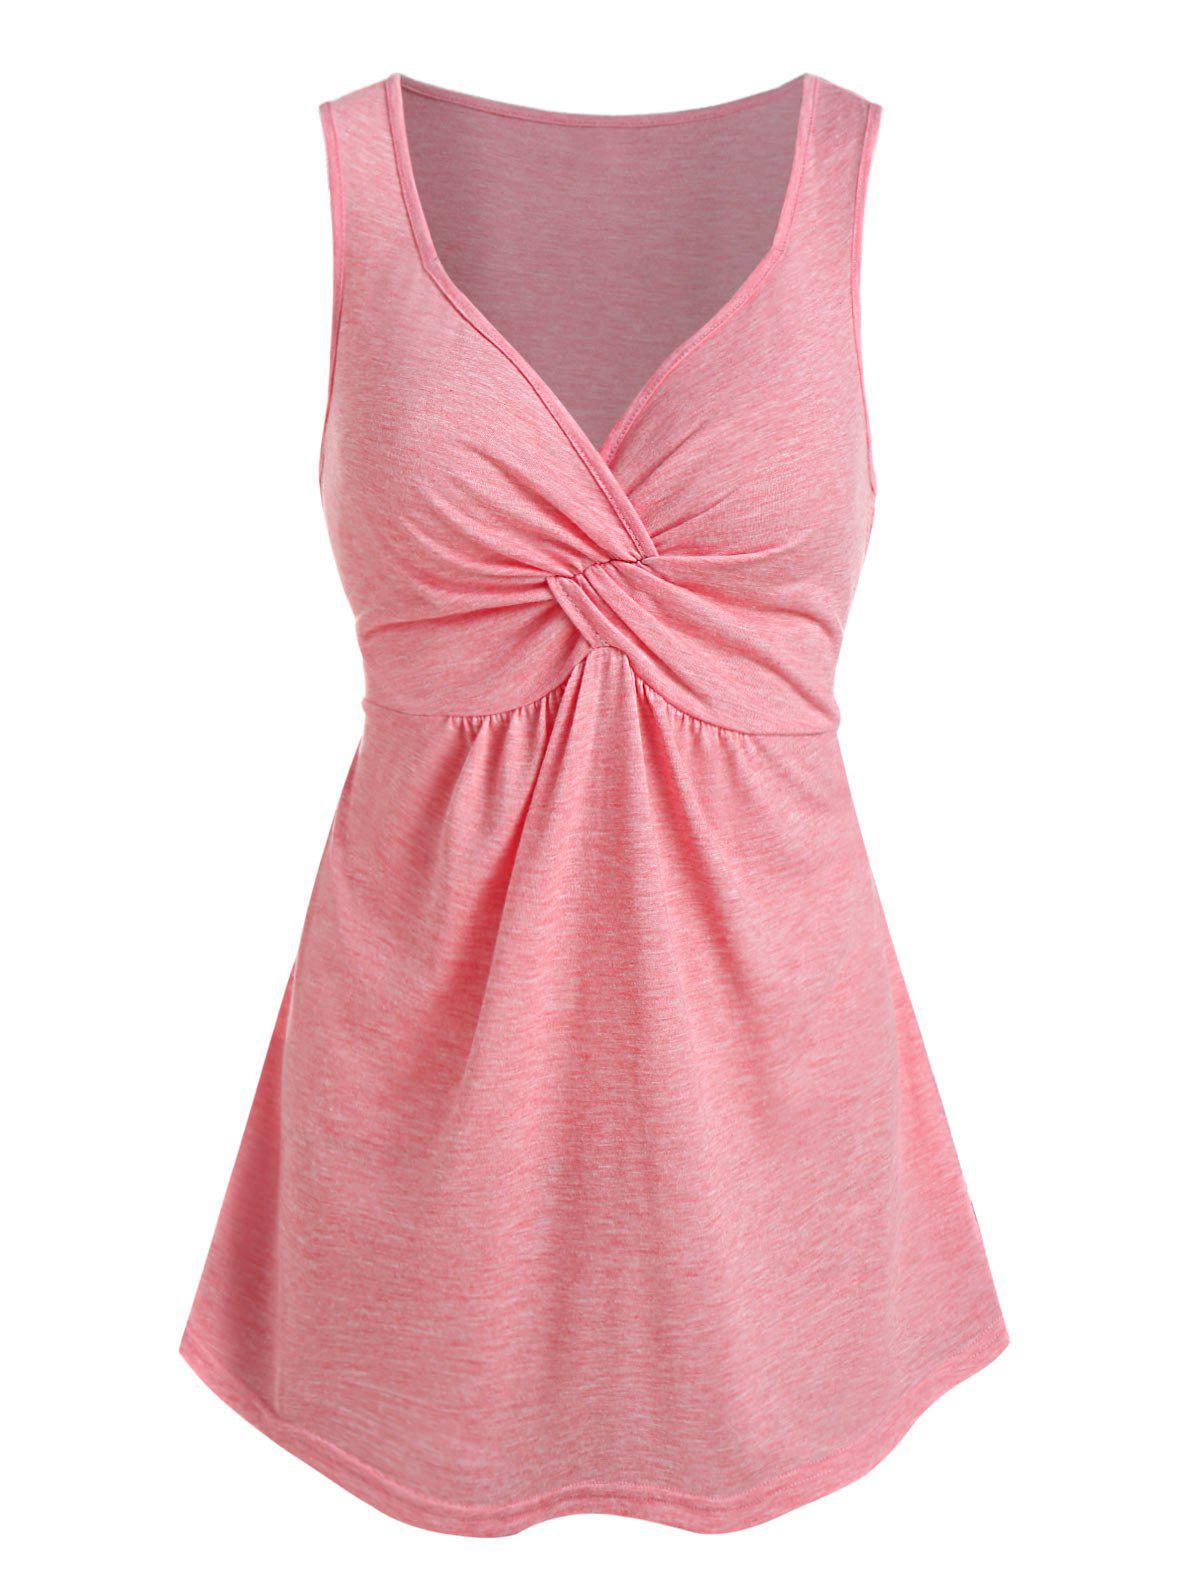 Online Plain Front Twist Curved Tank Top